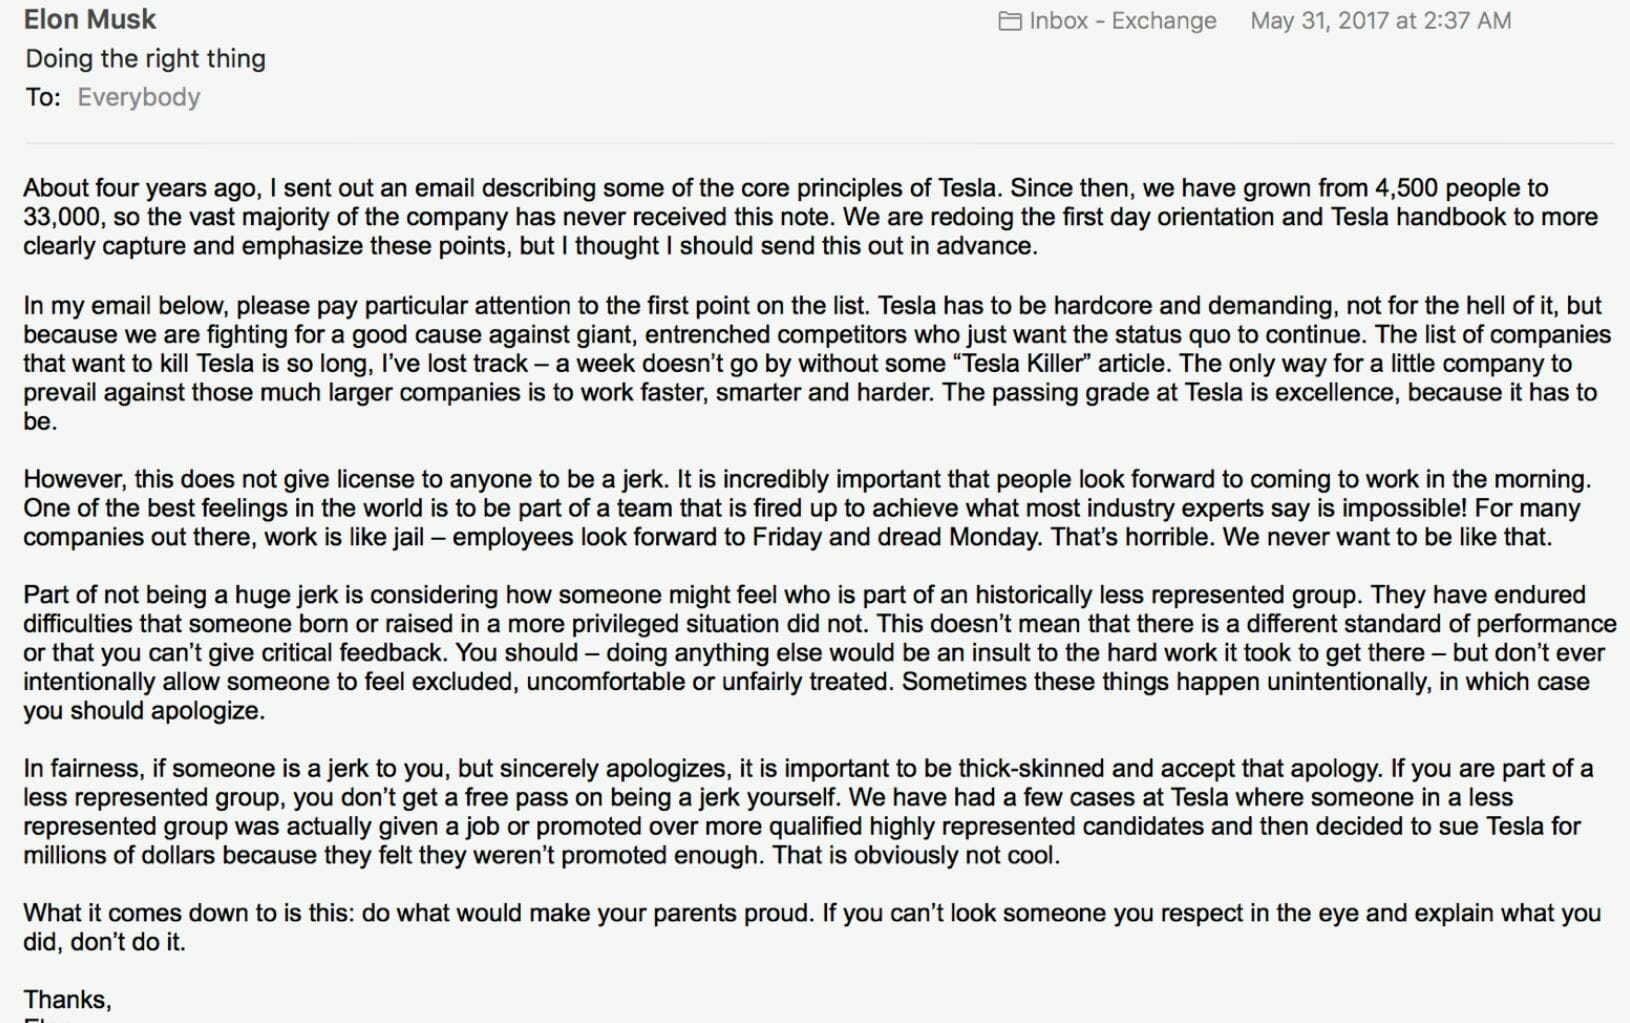 elon musk letter to employees lawsuit